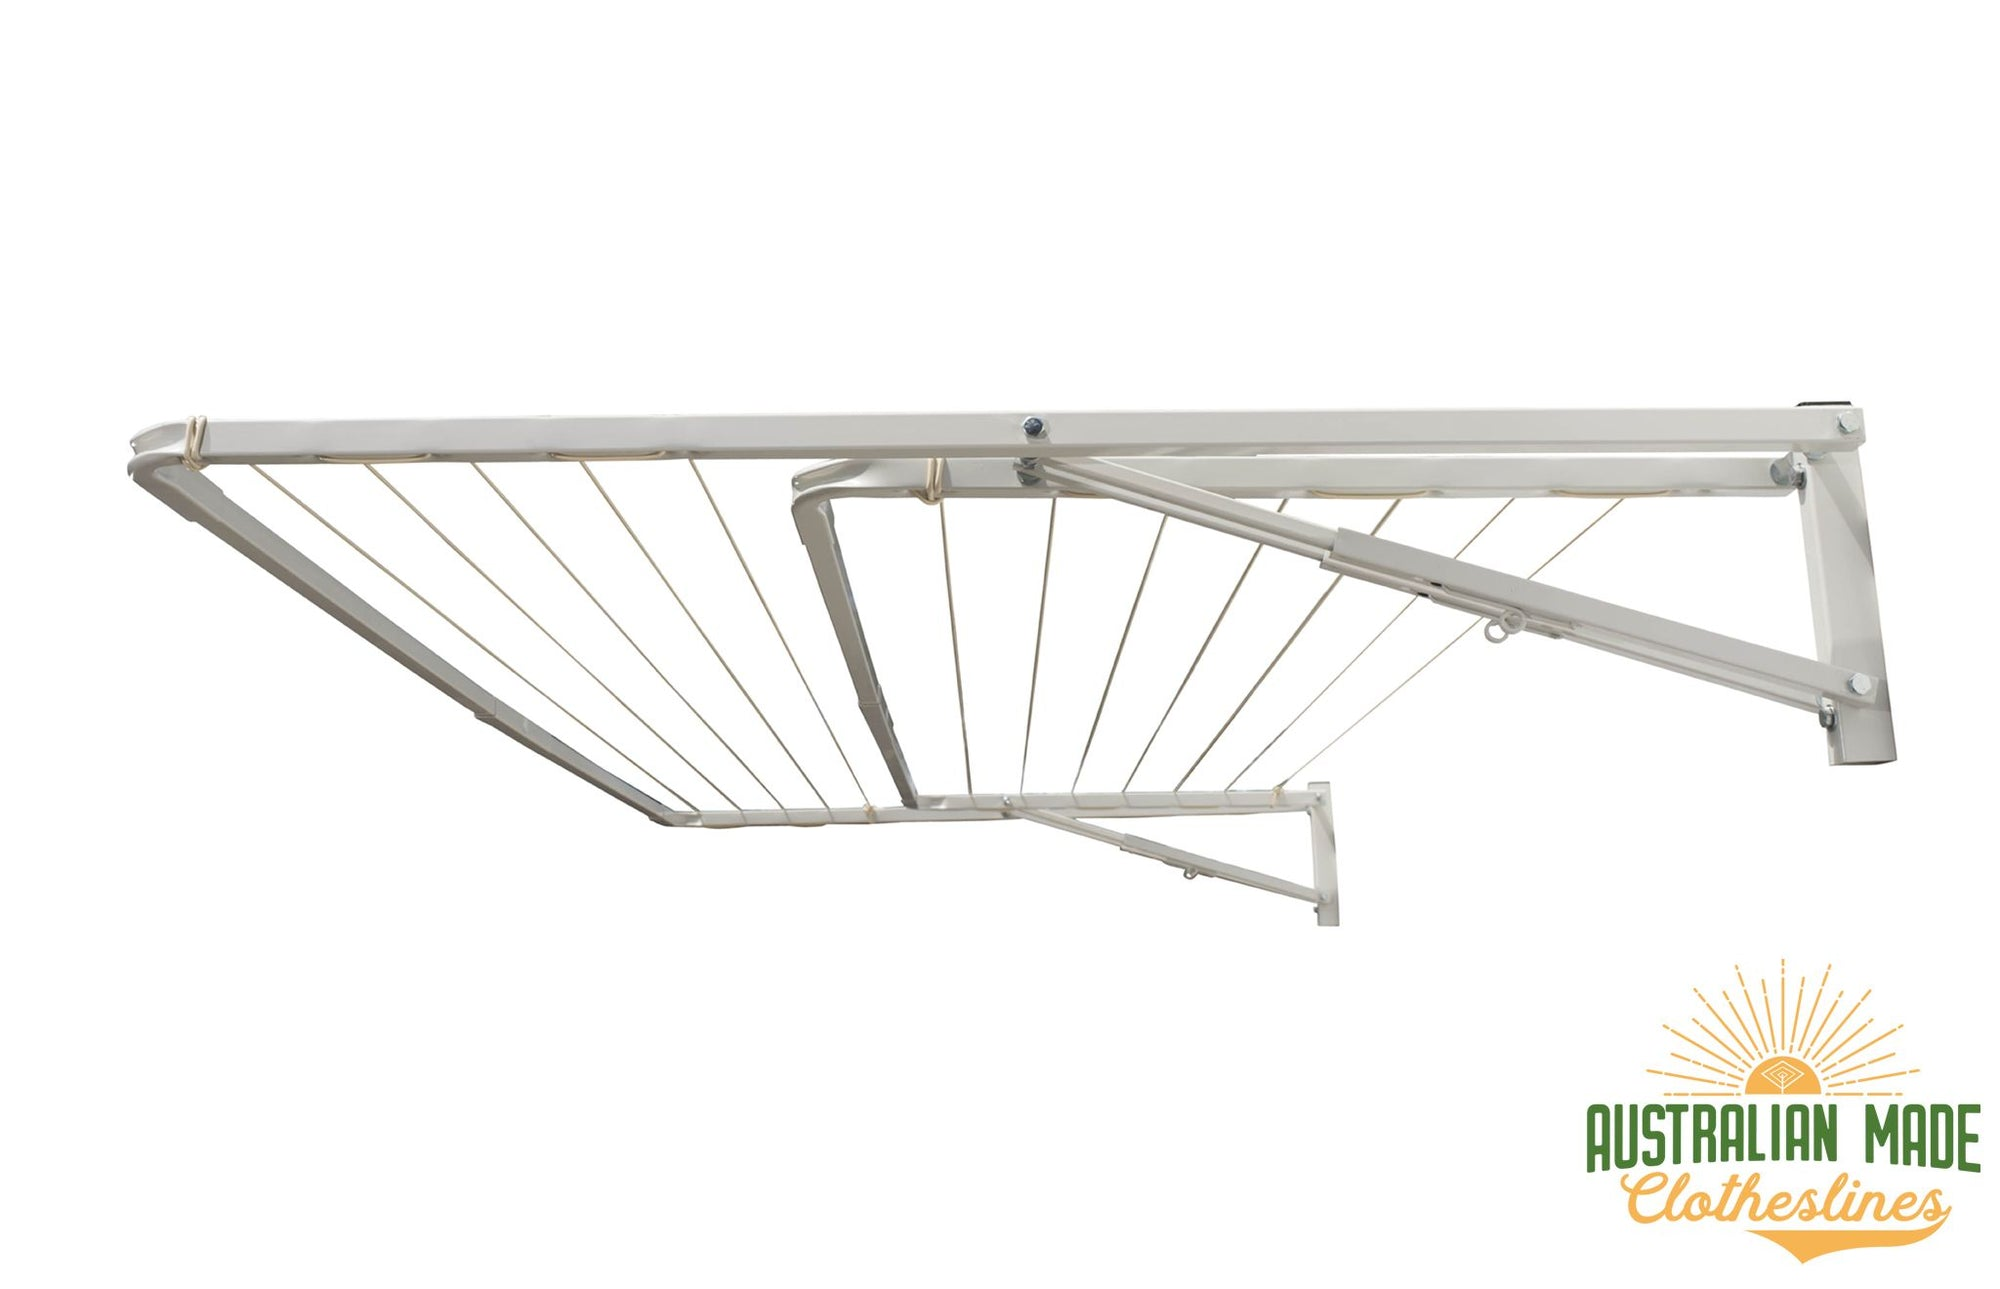 Eco Dual Frame Clothesline - Classic Cream Right Perspective With Eco Lowline Attachment Folded - Australian Made Clotheslines